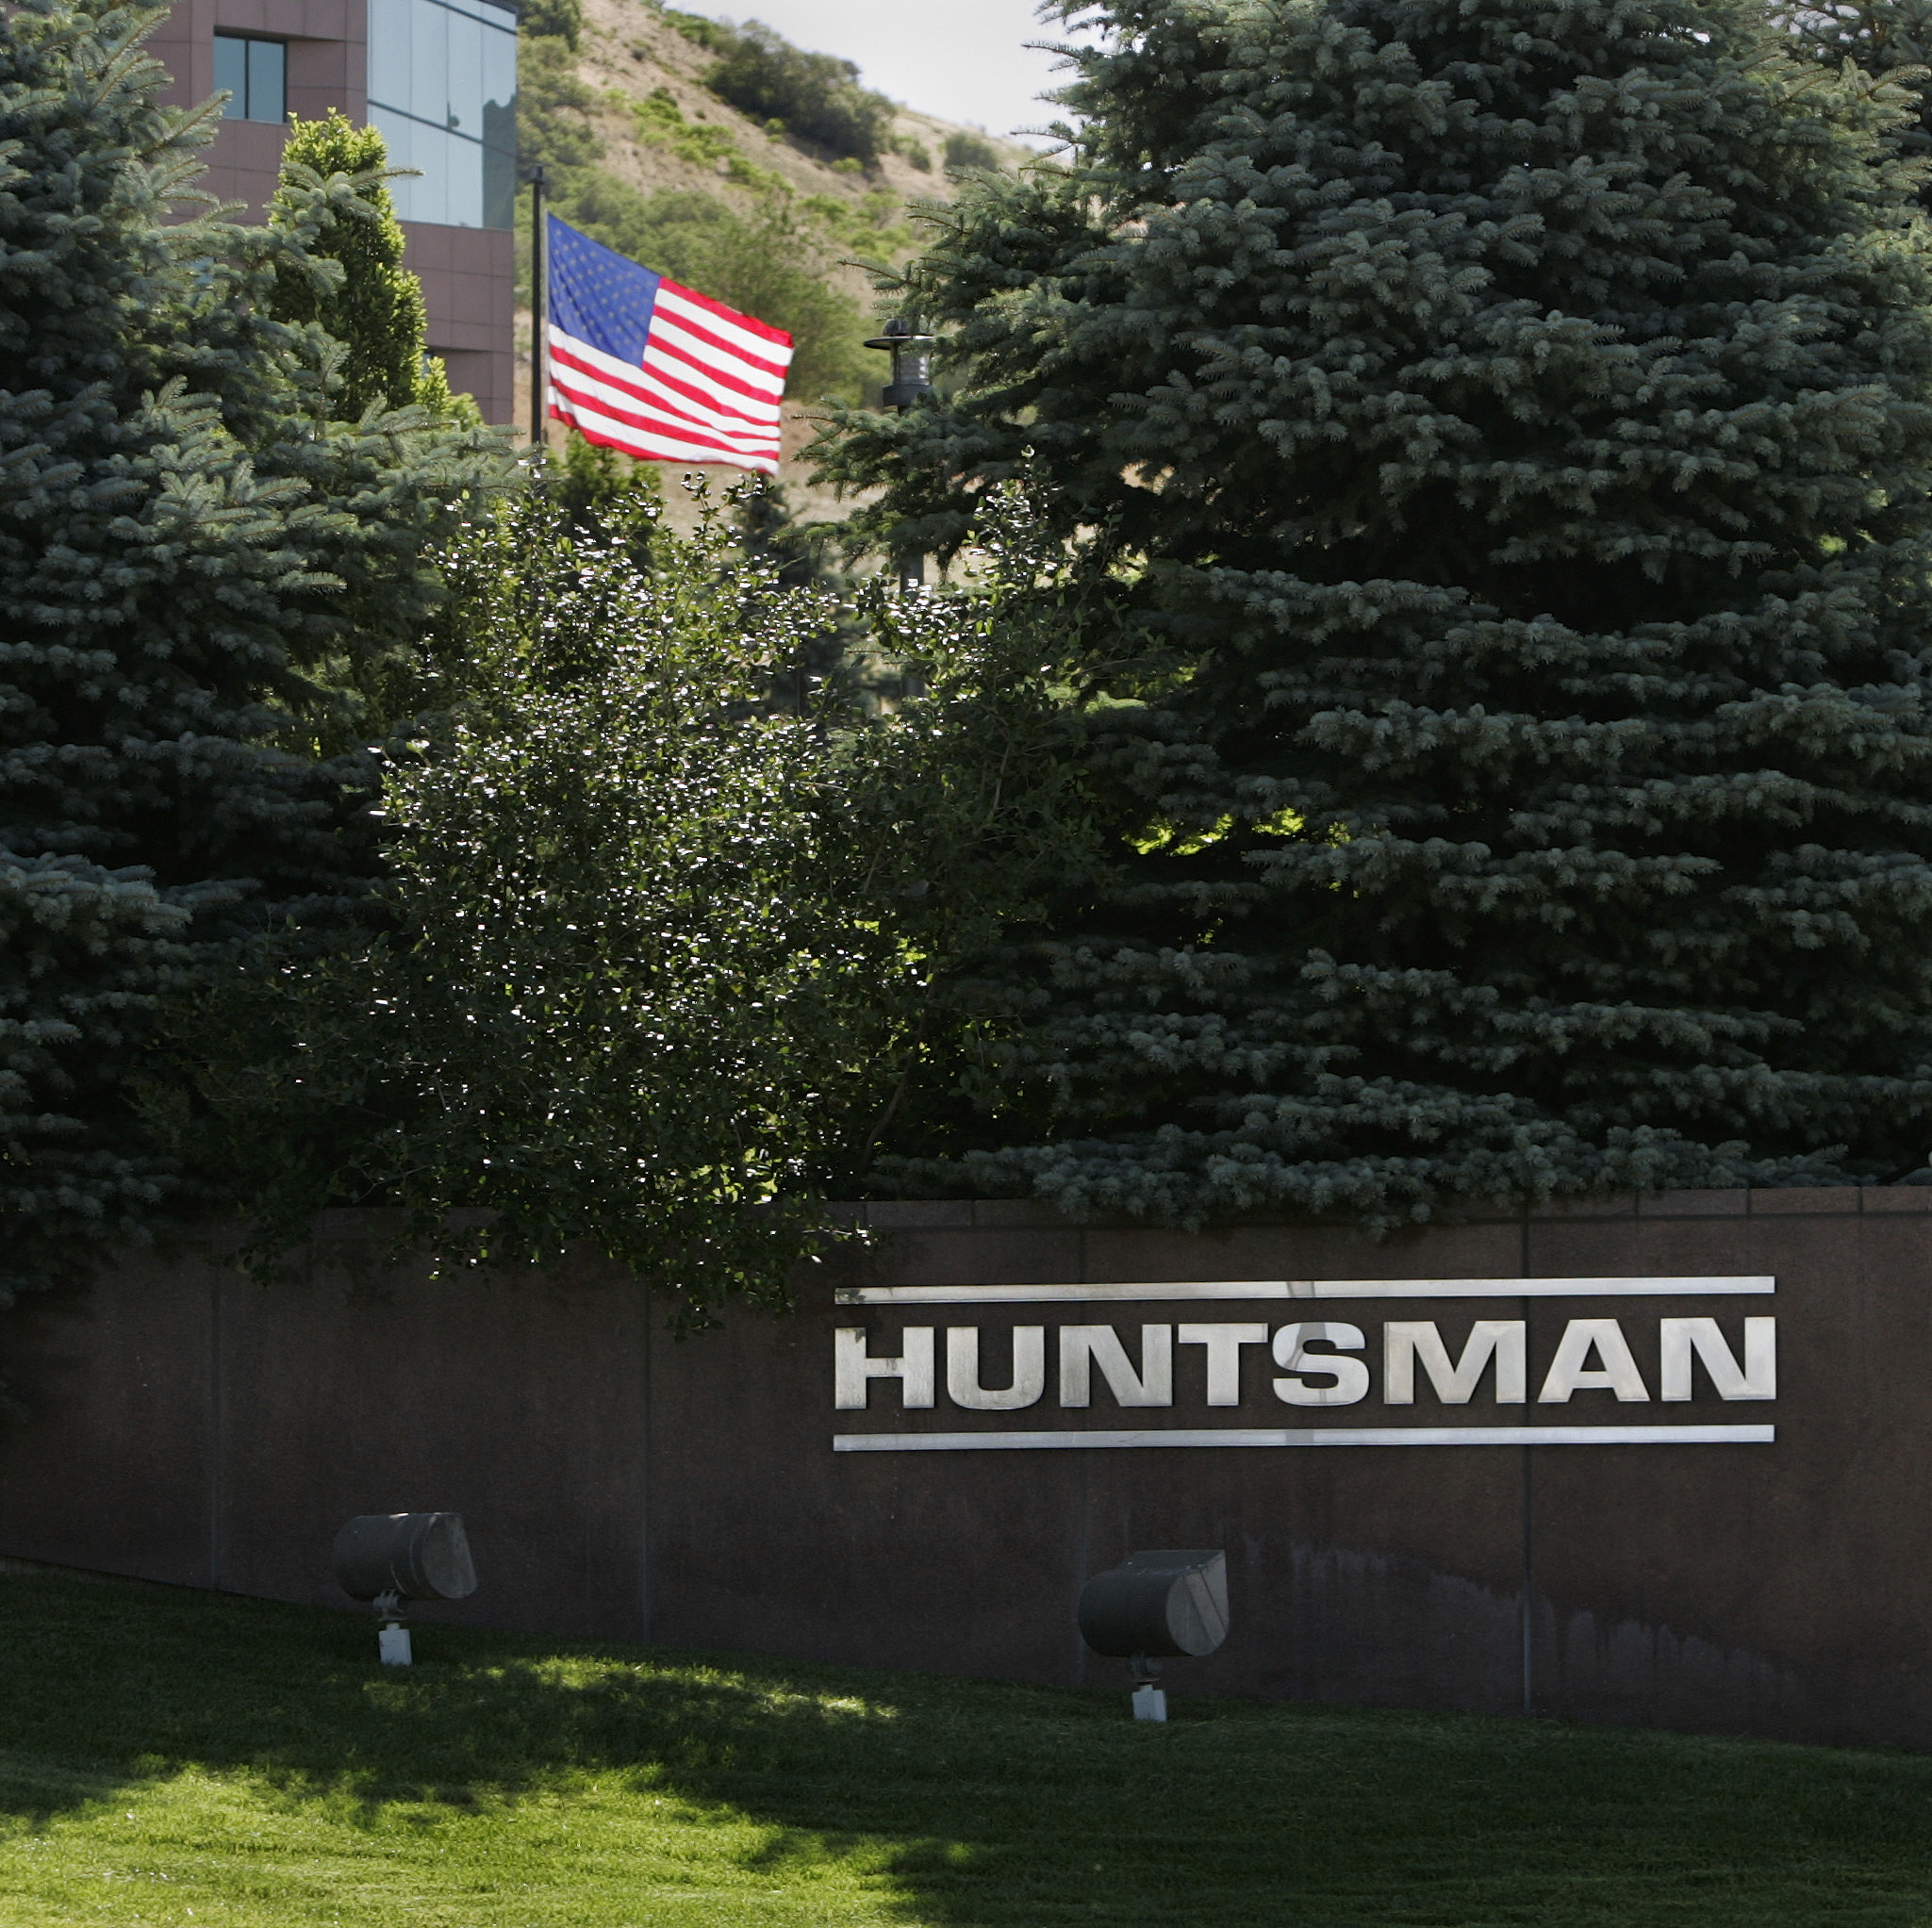 Huntsman Corp., Swiss company agree to $20B merger